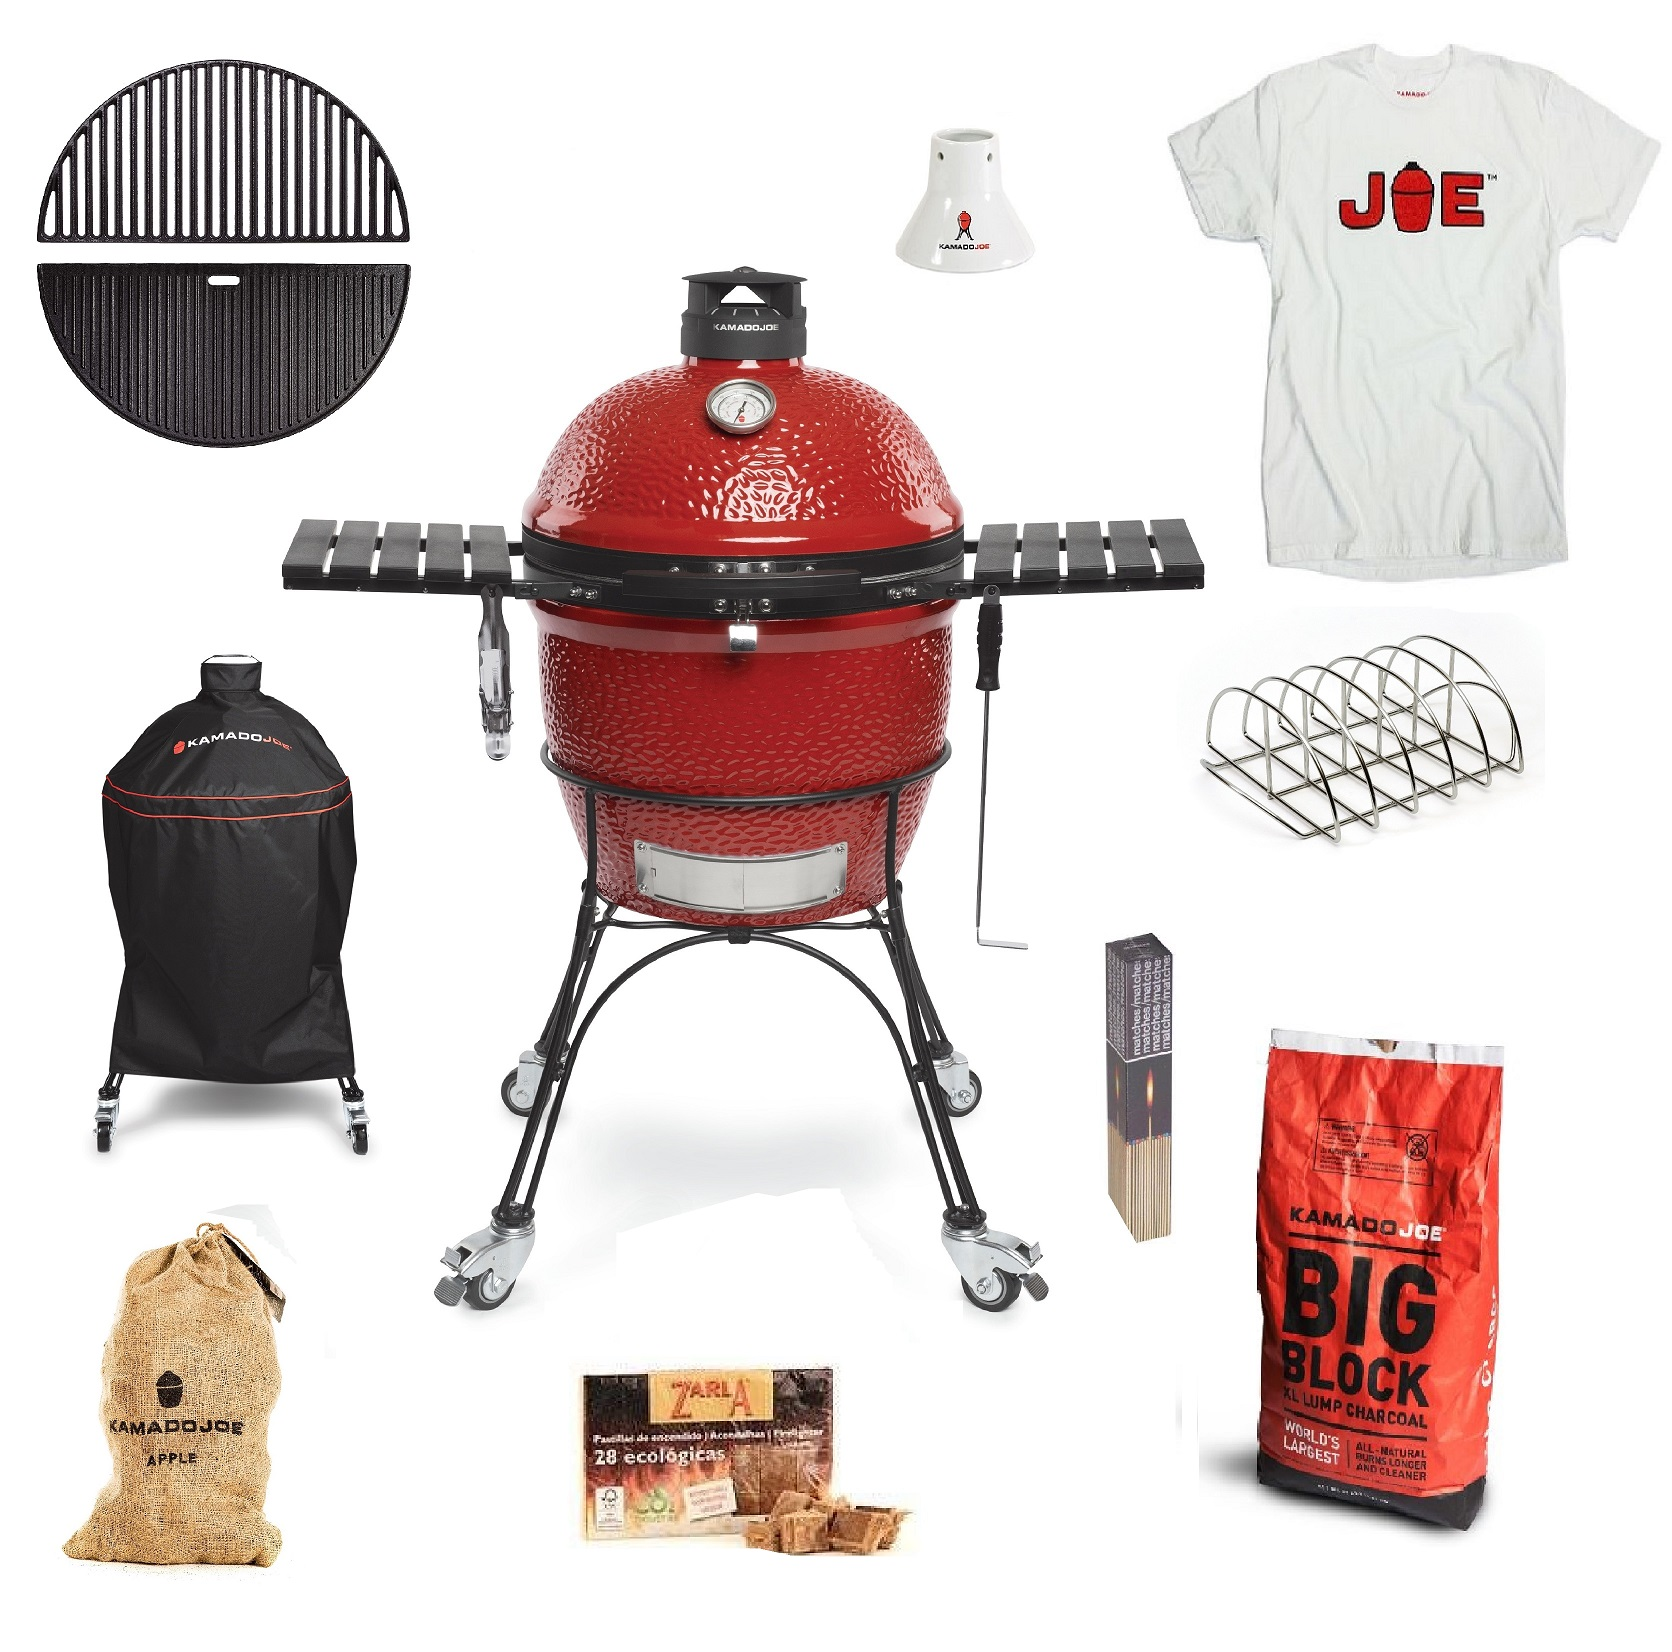 Kamado Joe Classic 2 Get Grilling bundle with T Shirt for TopBBQ